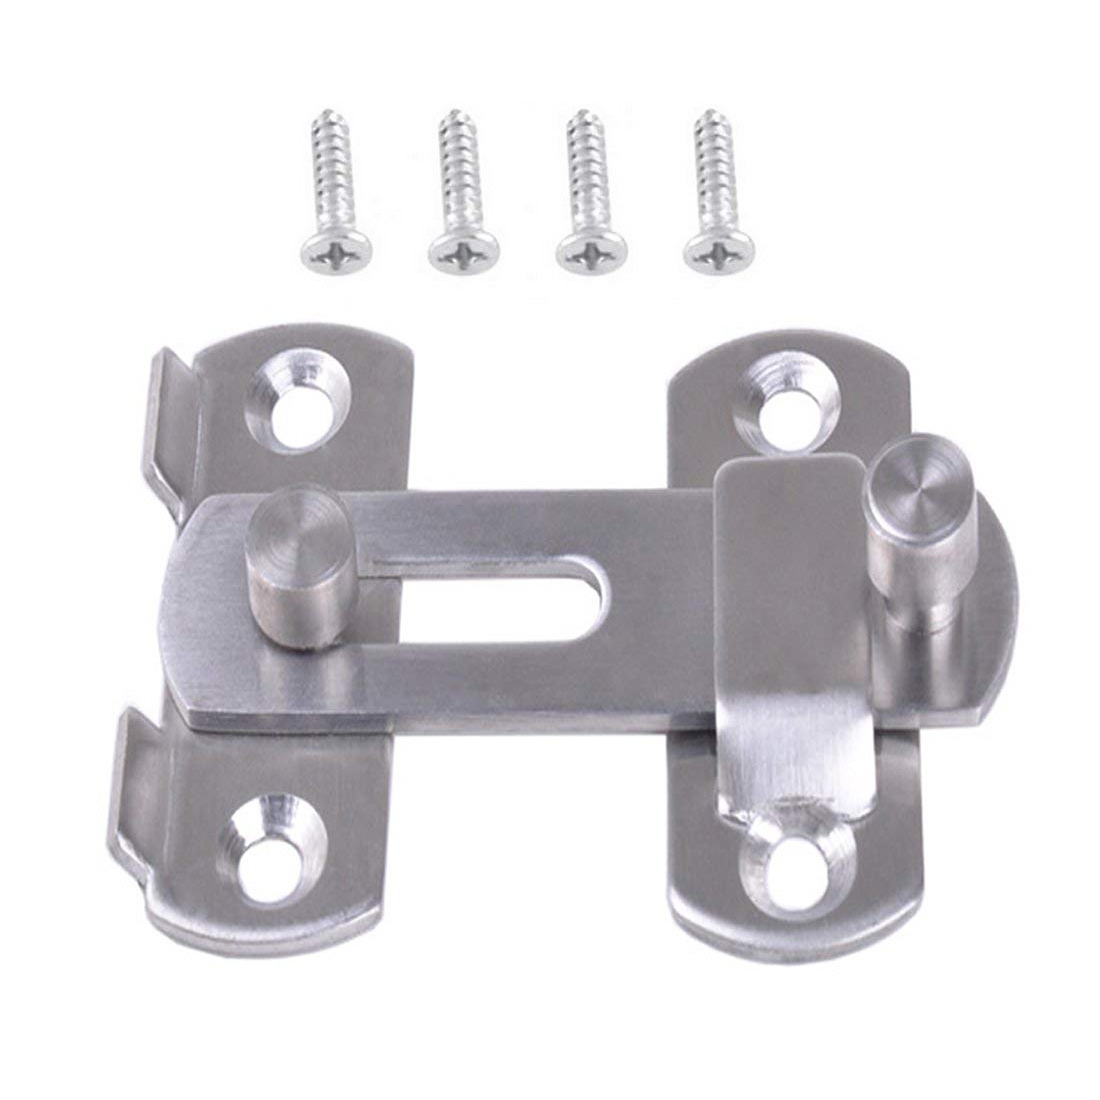 70*50 Mm Hasp Latch METAL Hasp Latch Lock Sliding Door Lock For Window Cabinet Fitting Sliding Door Buckle